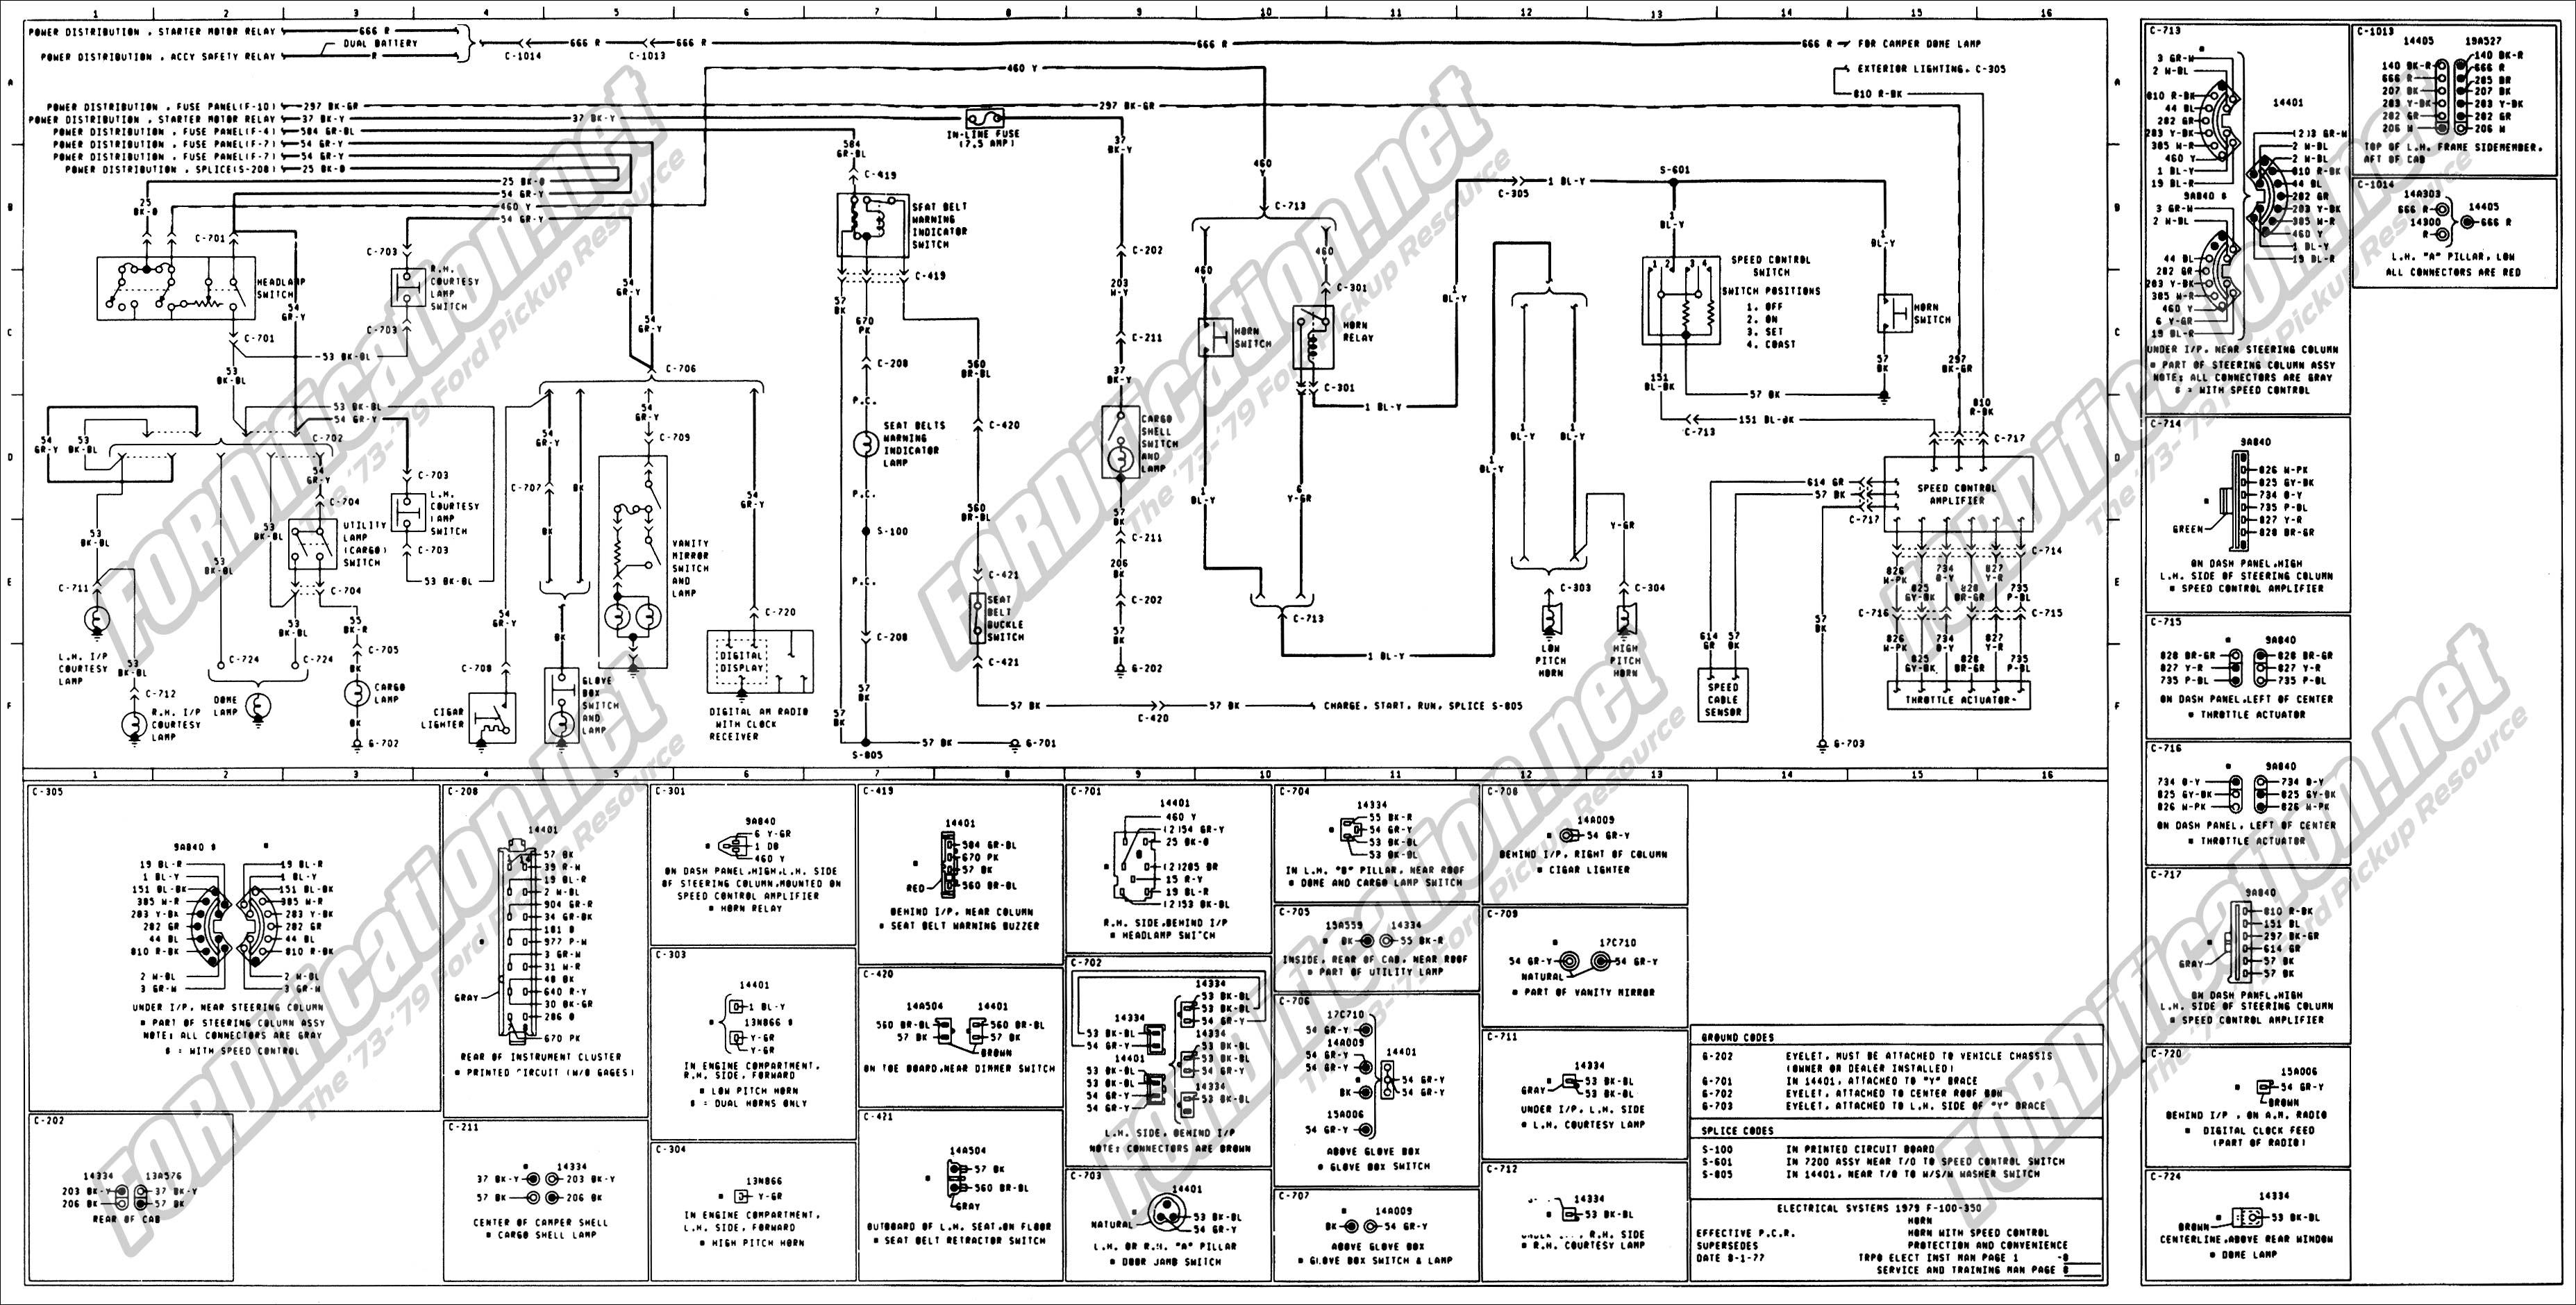 1979 ford F150 Wiring Diagram | Free Wiring Diagram